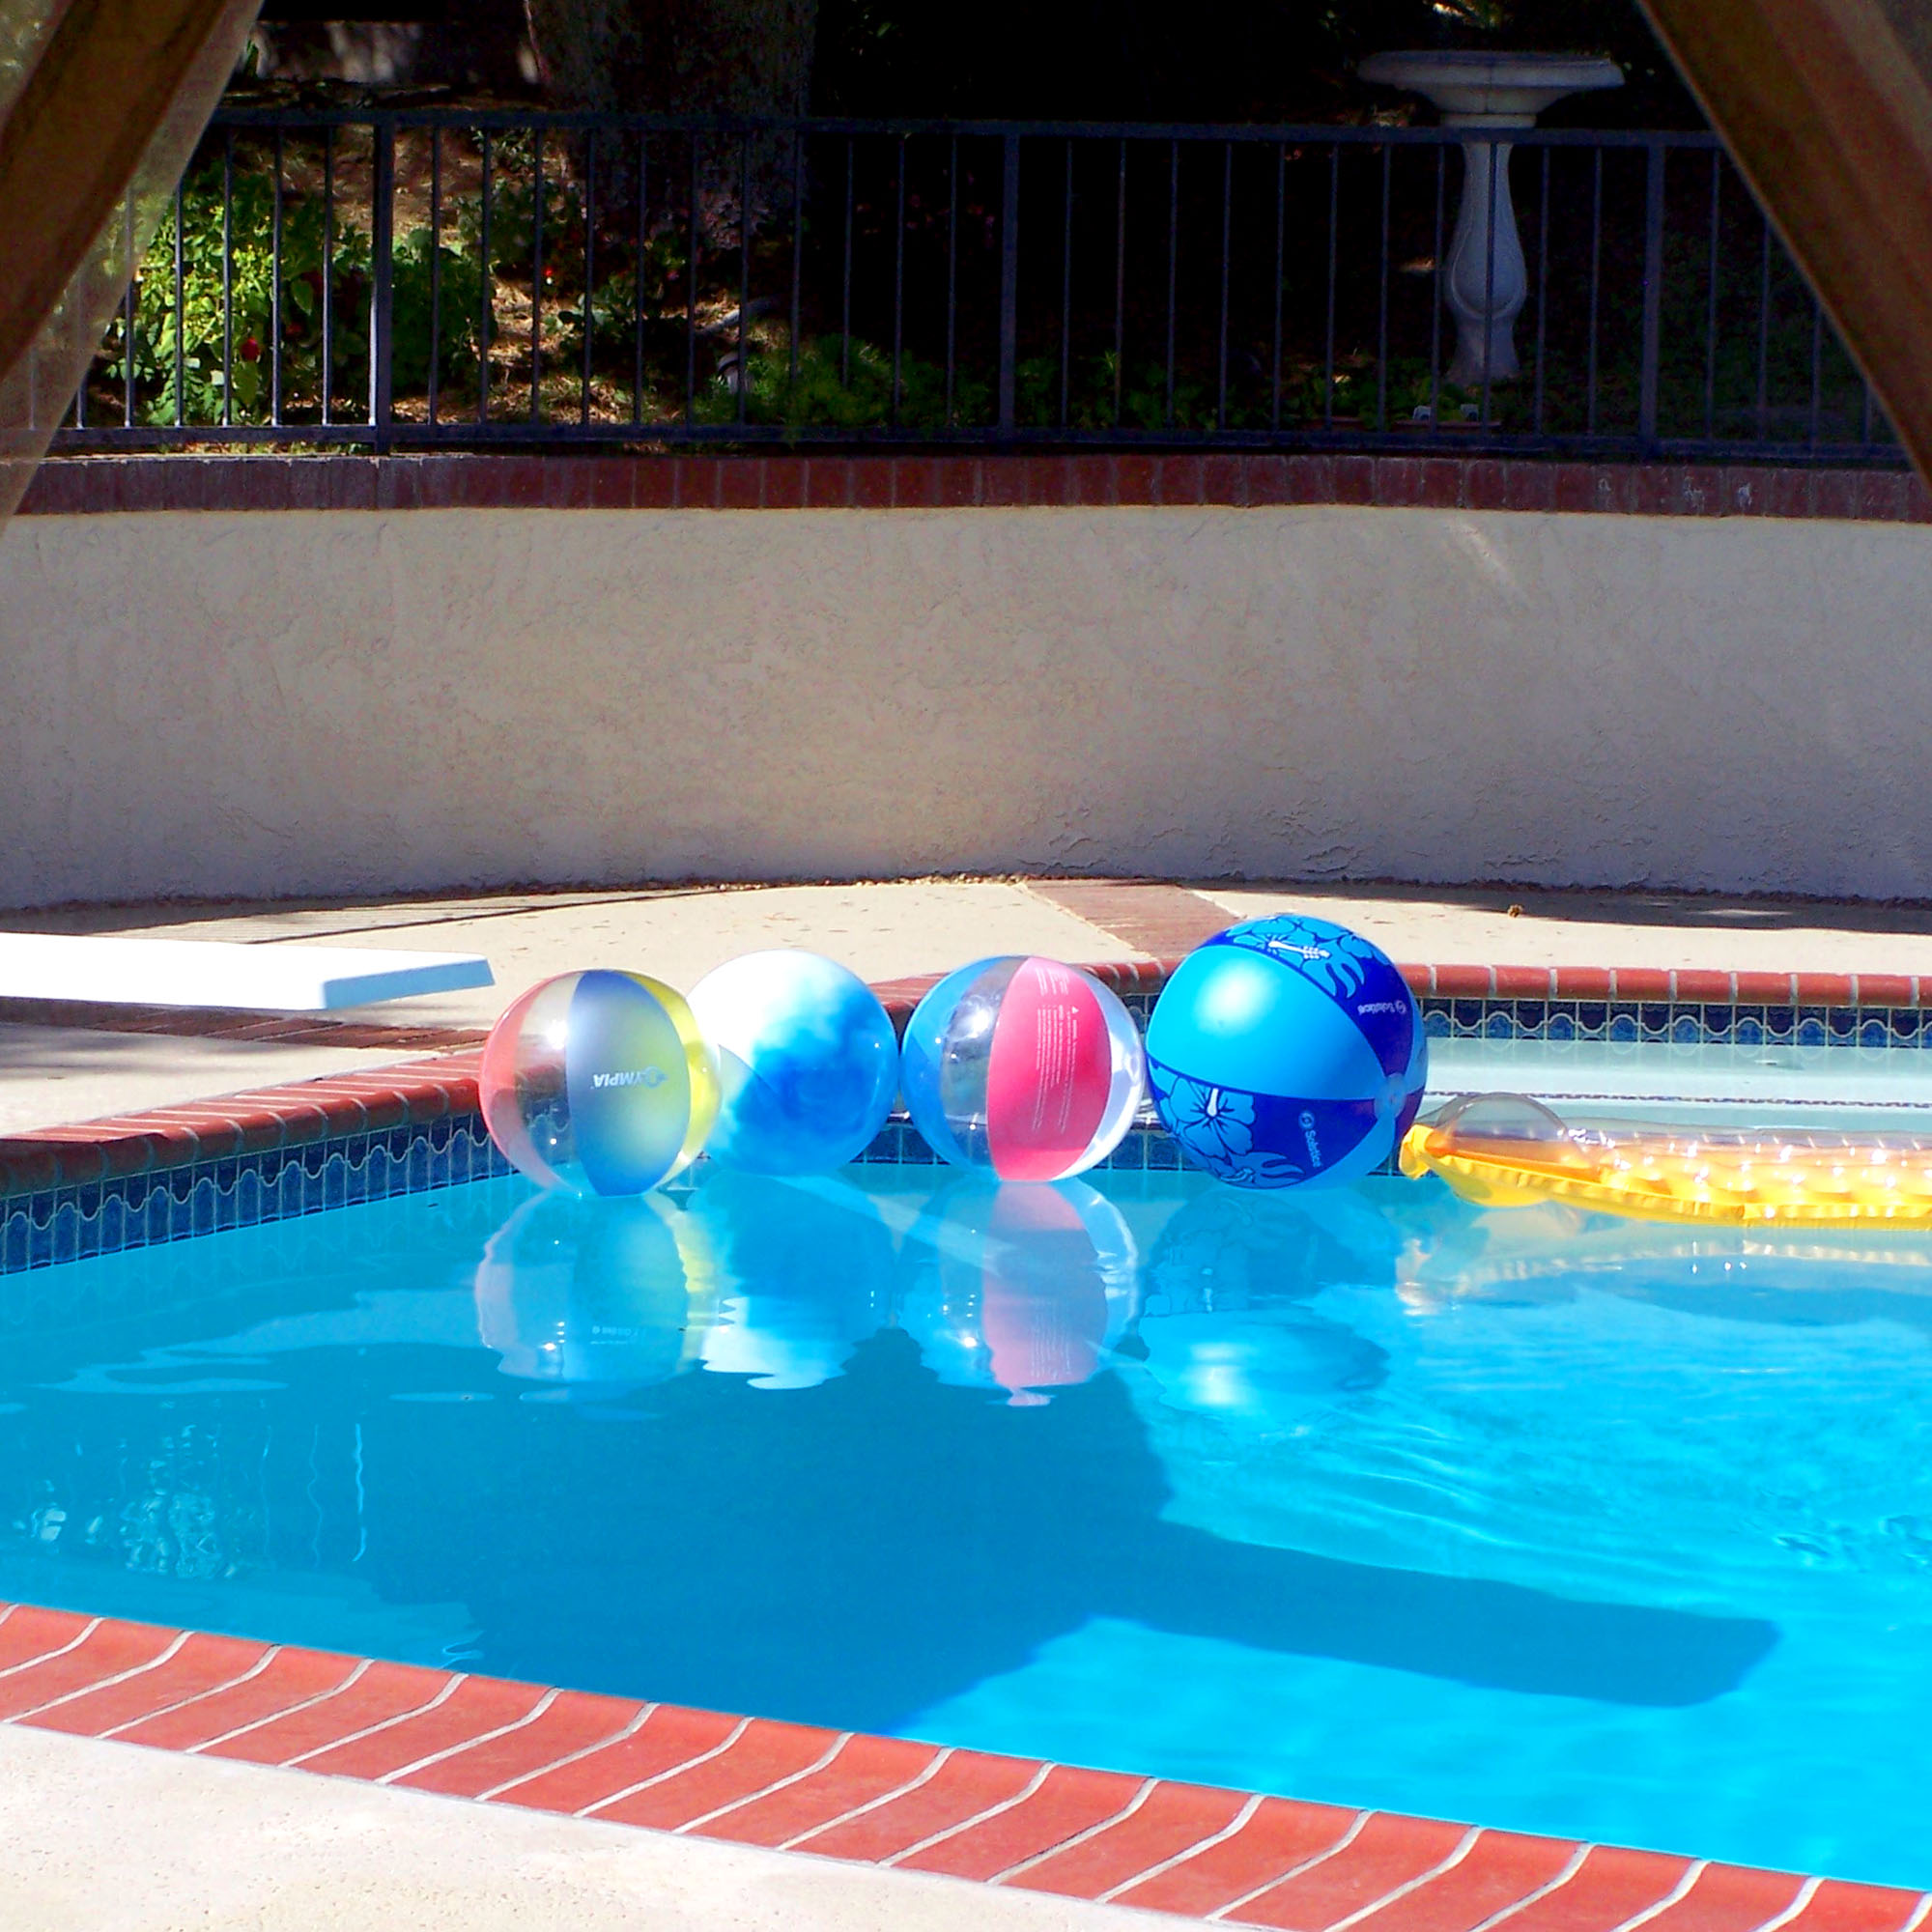 If You Are Fortunate Enough To Have A Swimming Pool In Your Backyard House Is Likely Going Be The Place For